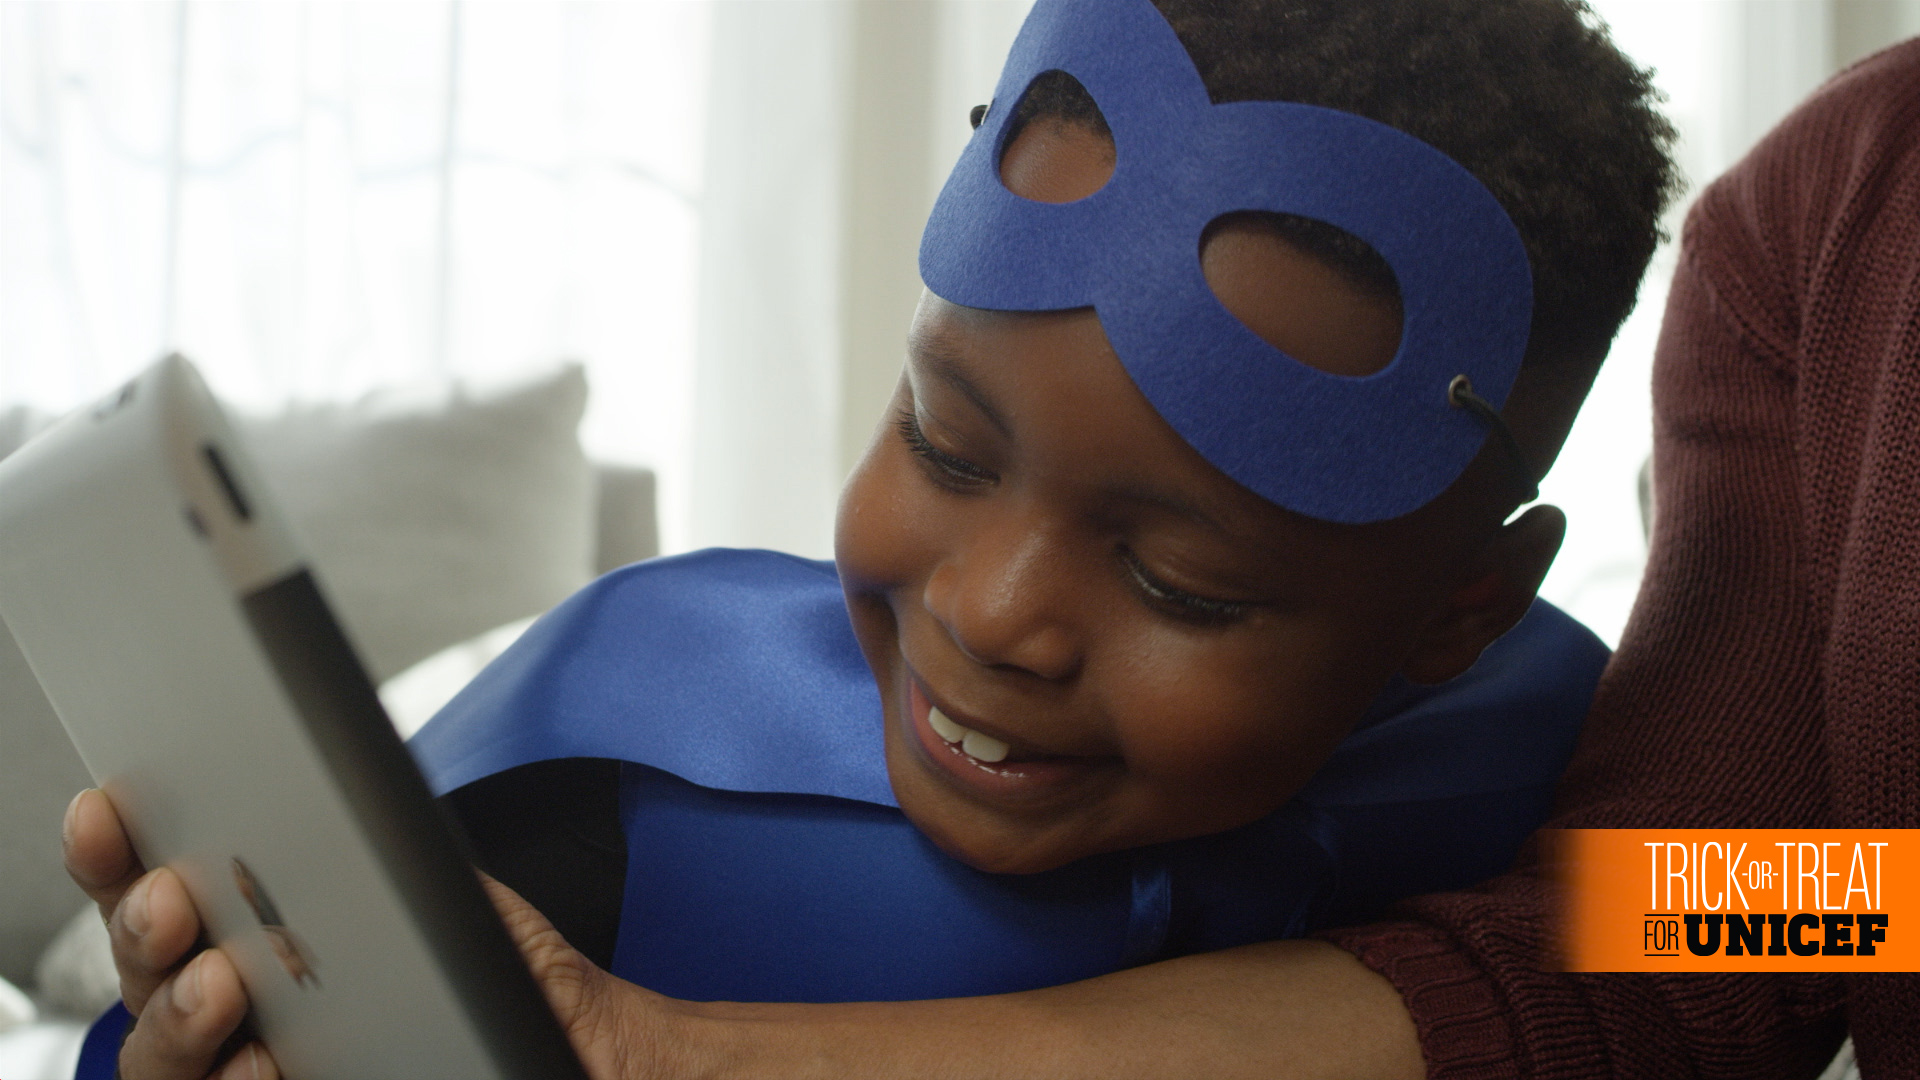 Trick-or-Treat for UNICEF is going virtual for 2020